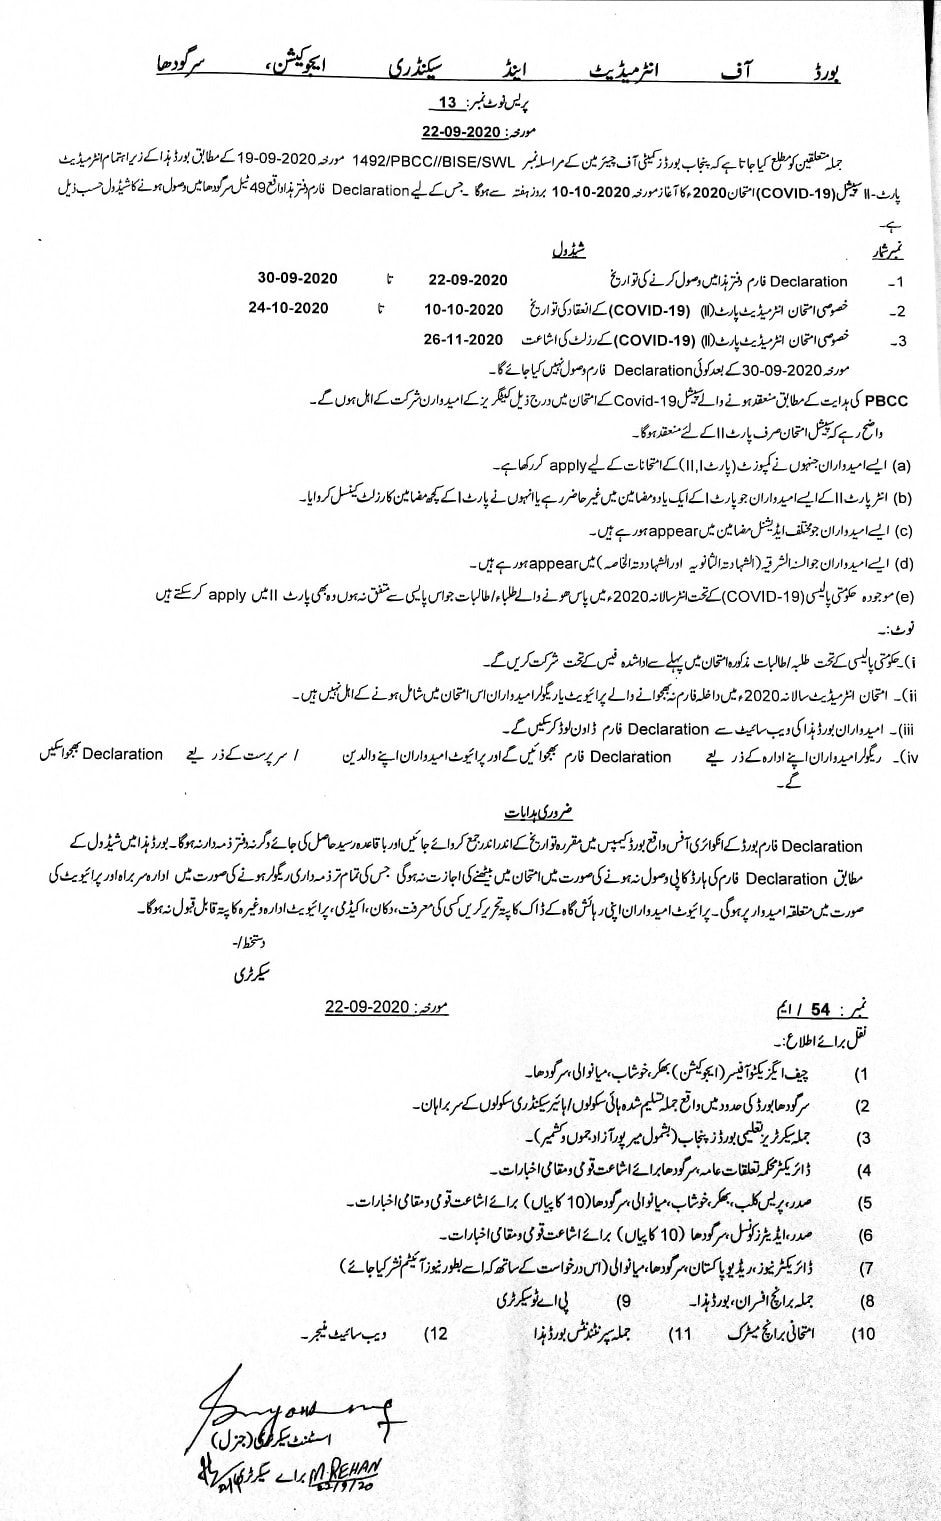 BISE Sargodha & Bahawalpur Schedule of Under Taking for Special Exam 2020